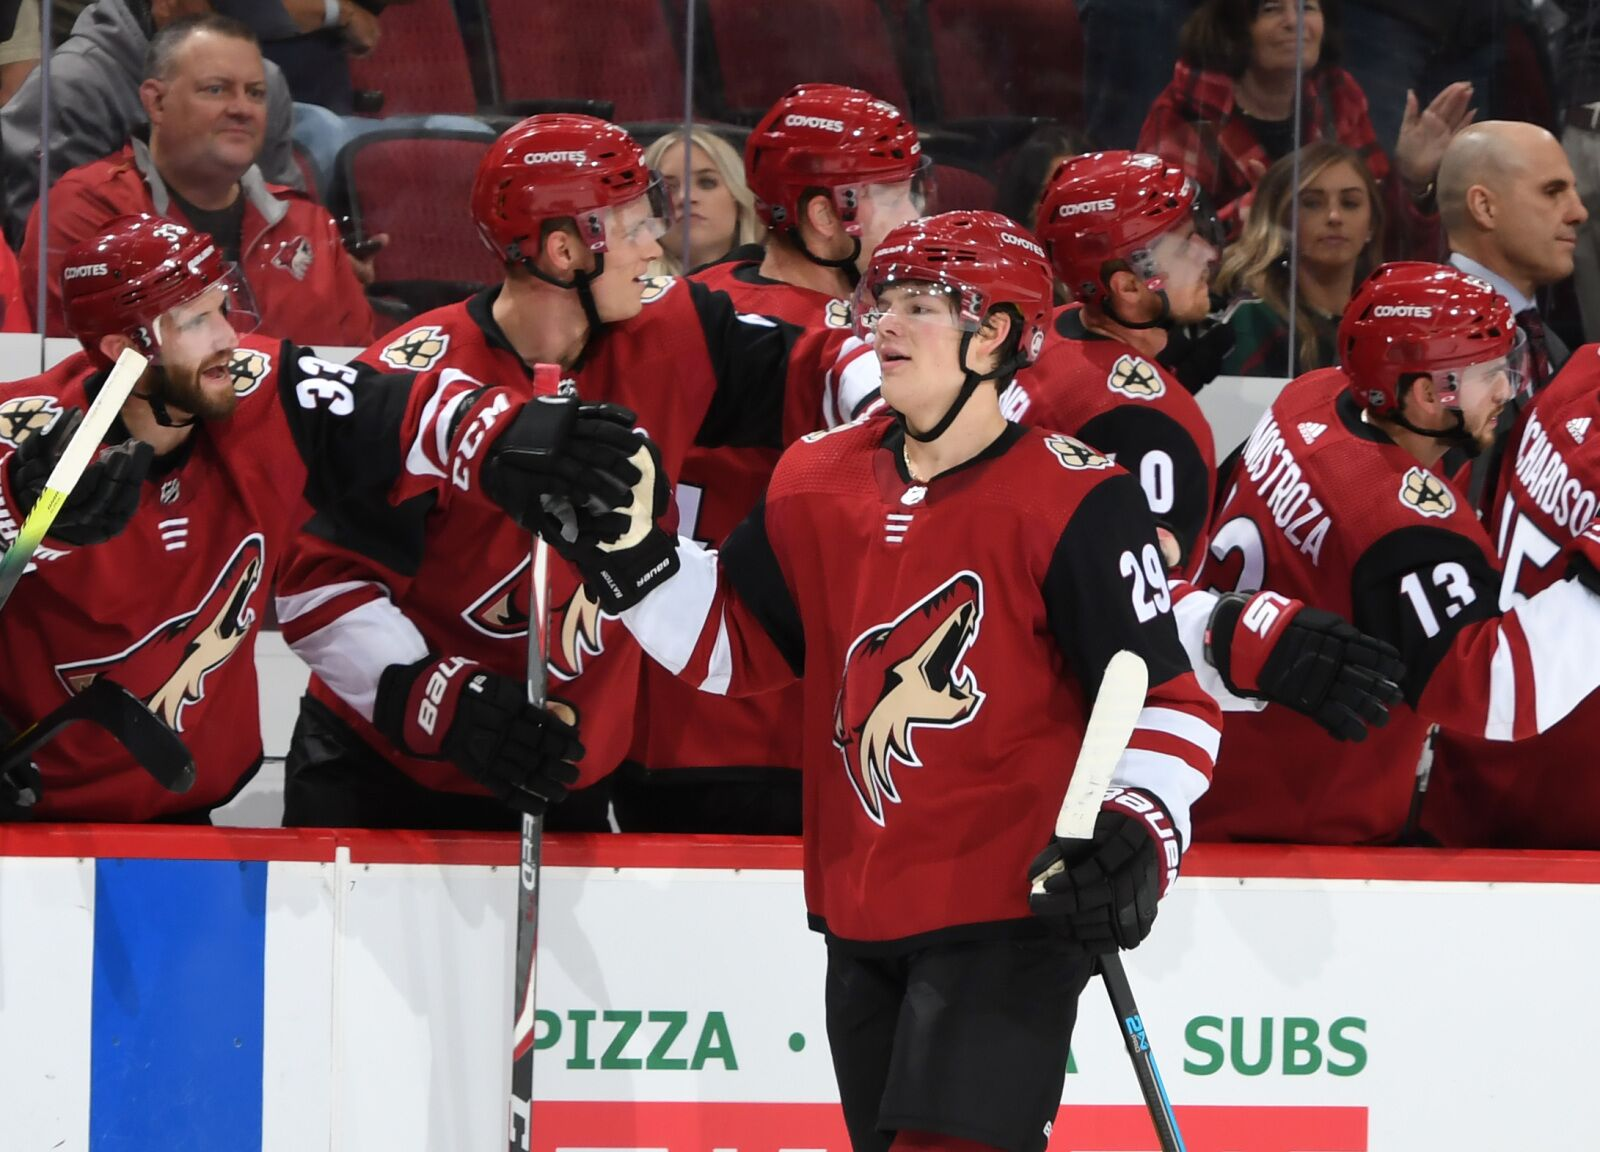 Arizona Coyotes to Test Their Resiliency Against the Toronto Maple Leafs